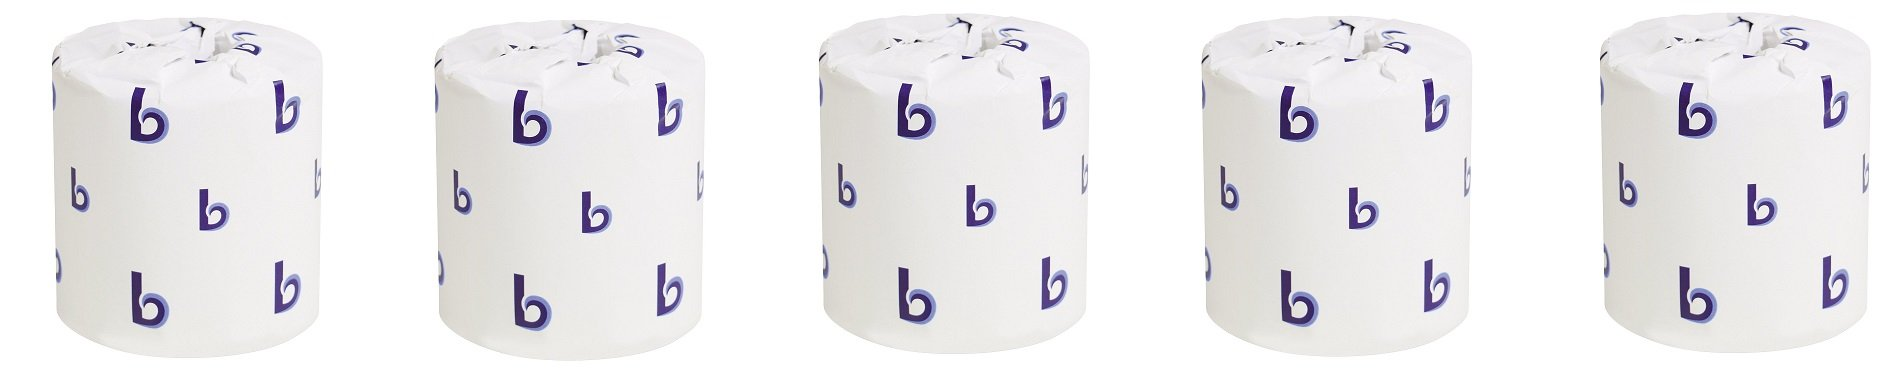 Boardwalk 6150 White Embossed 2-Ply Standard Toilet Tissue, 500 Sheets per Roll (Case of 96) (5-(Case of 96))